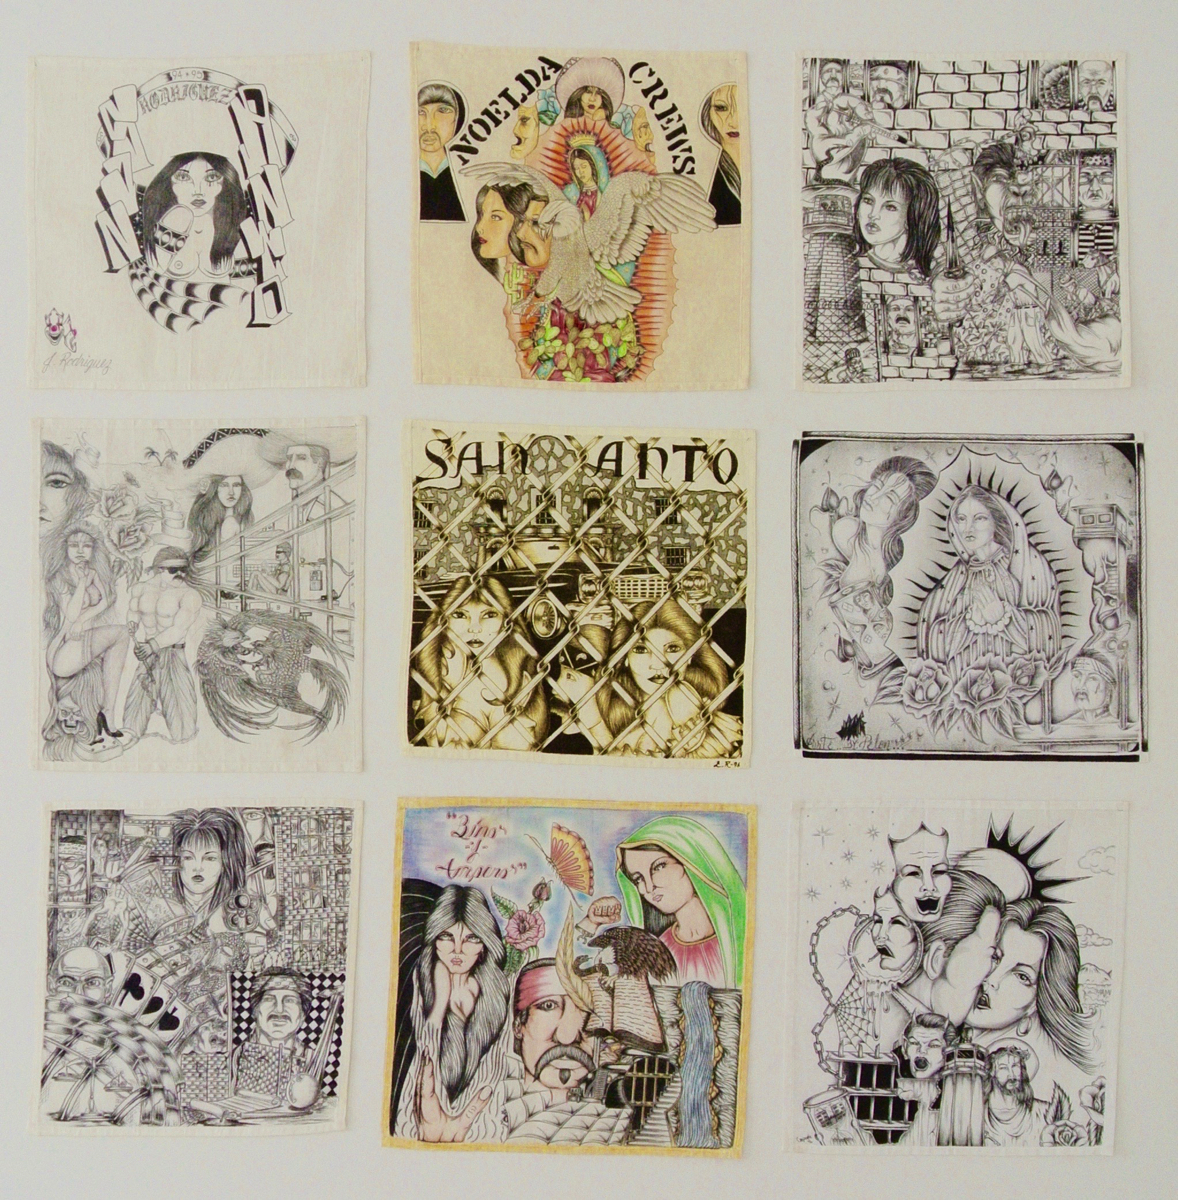 "Various unidentified Chicano inmate-artistsCollection of 9 paños*Graphite, colored pencil, pen and ink on cloth handkerchiefEach approx. 37 x 37 cm (14,5 x 14,5 inches)Framed size:  191,5 x 146,5 cm*Southwestern United States prisoner folk art made by mainly illiterate Hispanic detainees on a prison-issued paño, diminutive of pañuelo (""handkerchief"" in Spanish), using inspirations and motifs from Chicano culture.Please click here for a comprehensive essay on paños by Martha V. Henry."